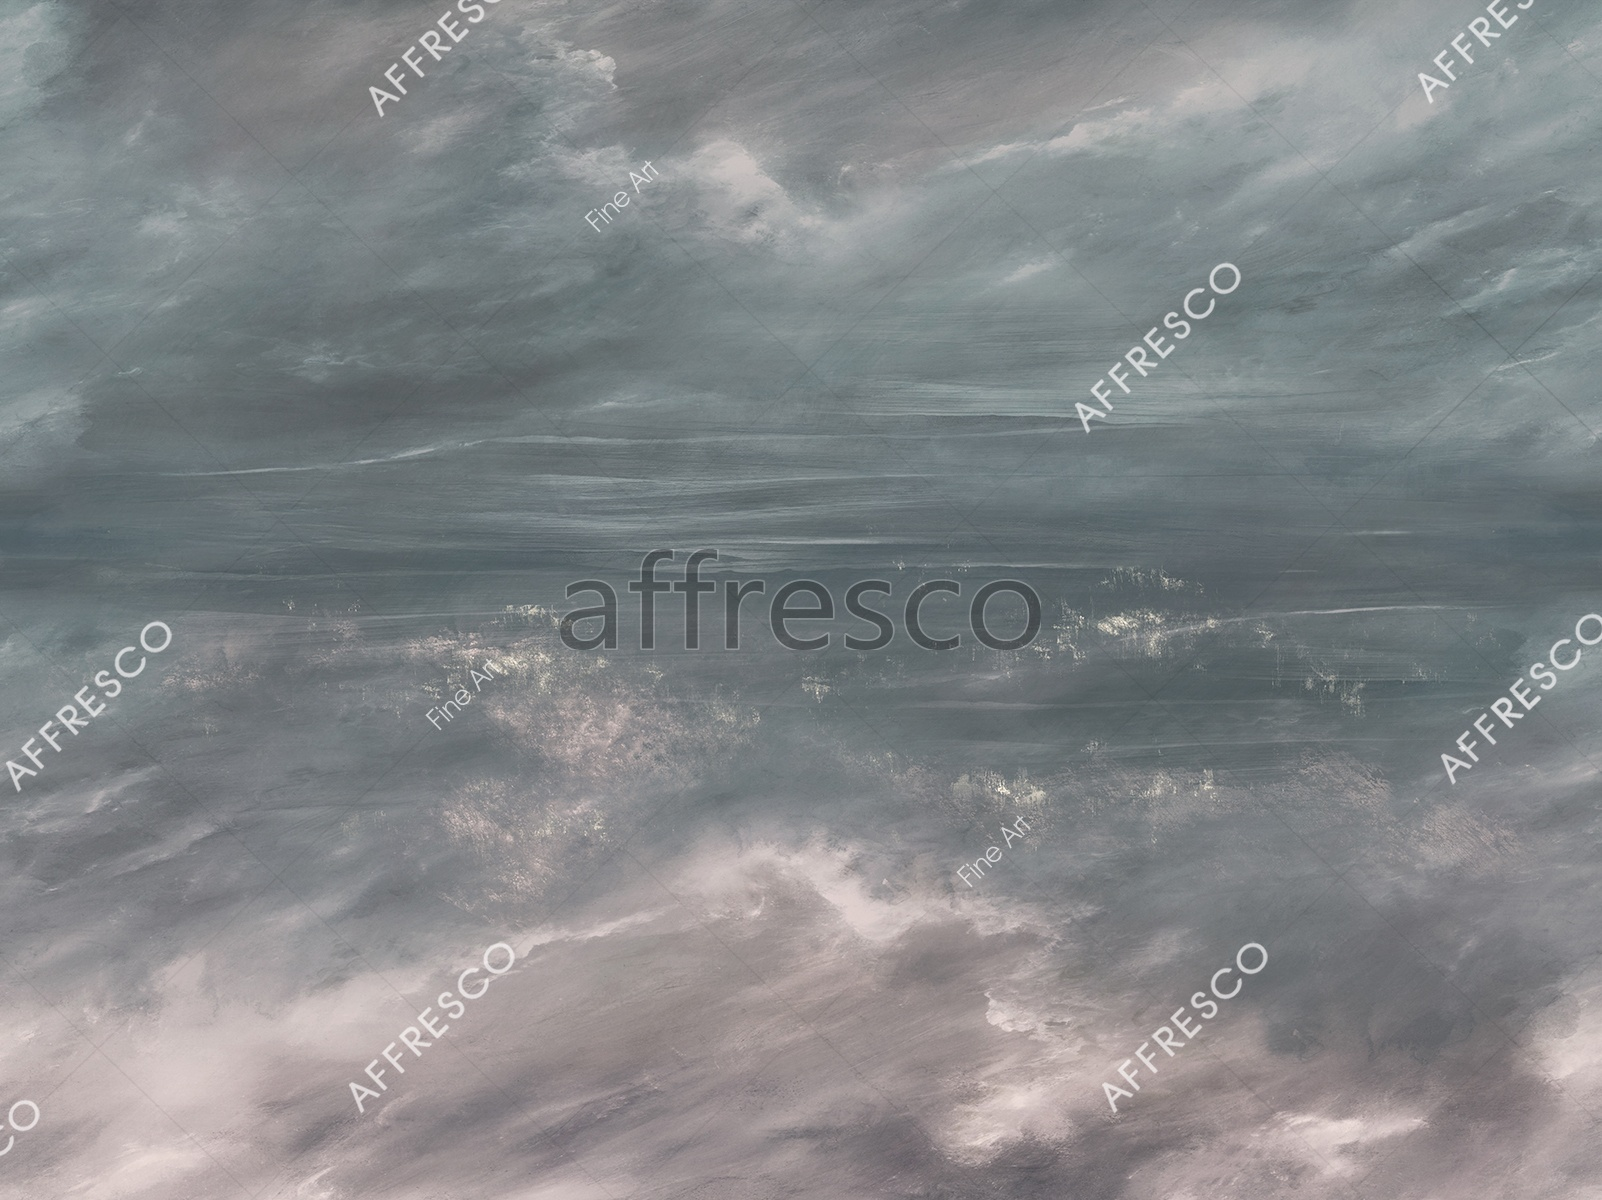 RE894-COL3 | Fine Art | Affresco Factory